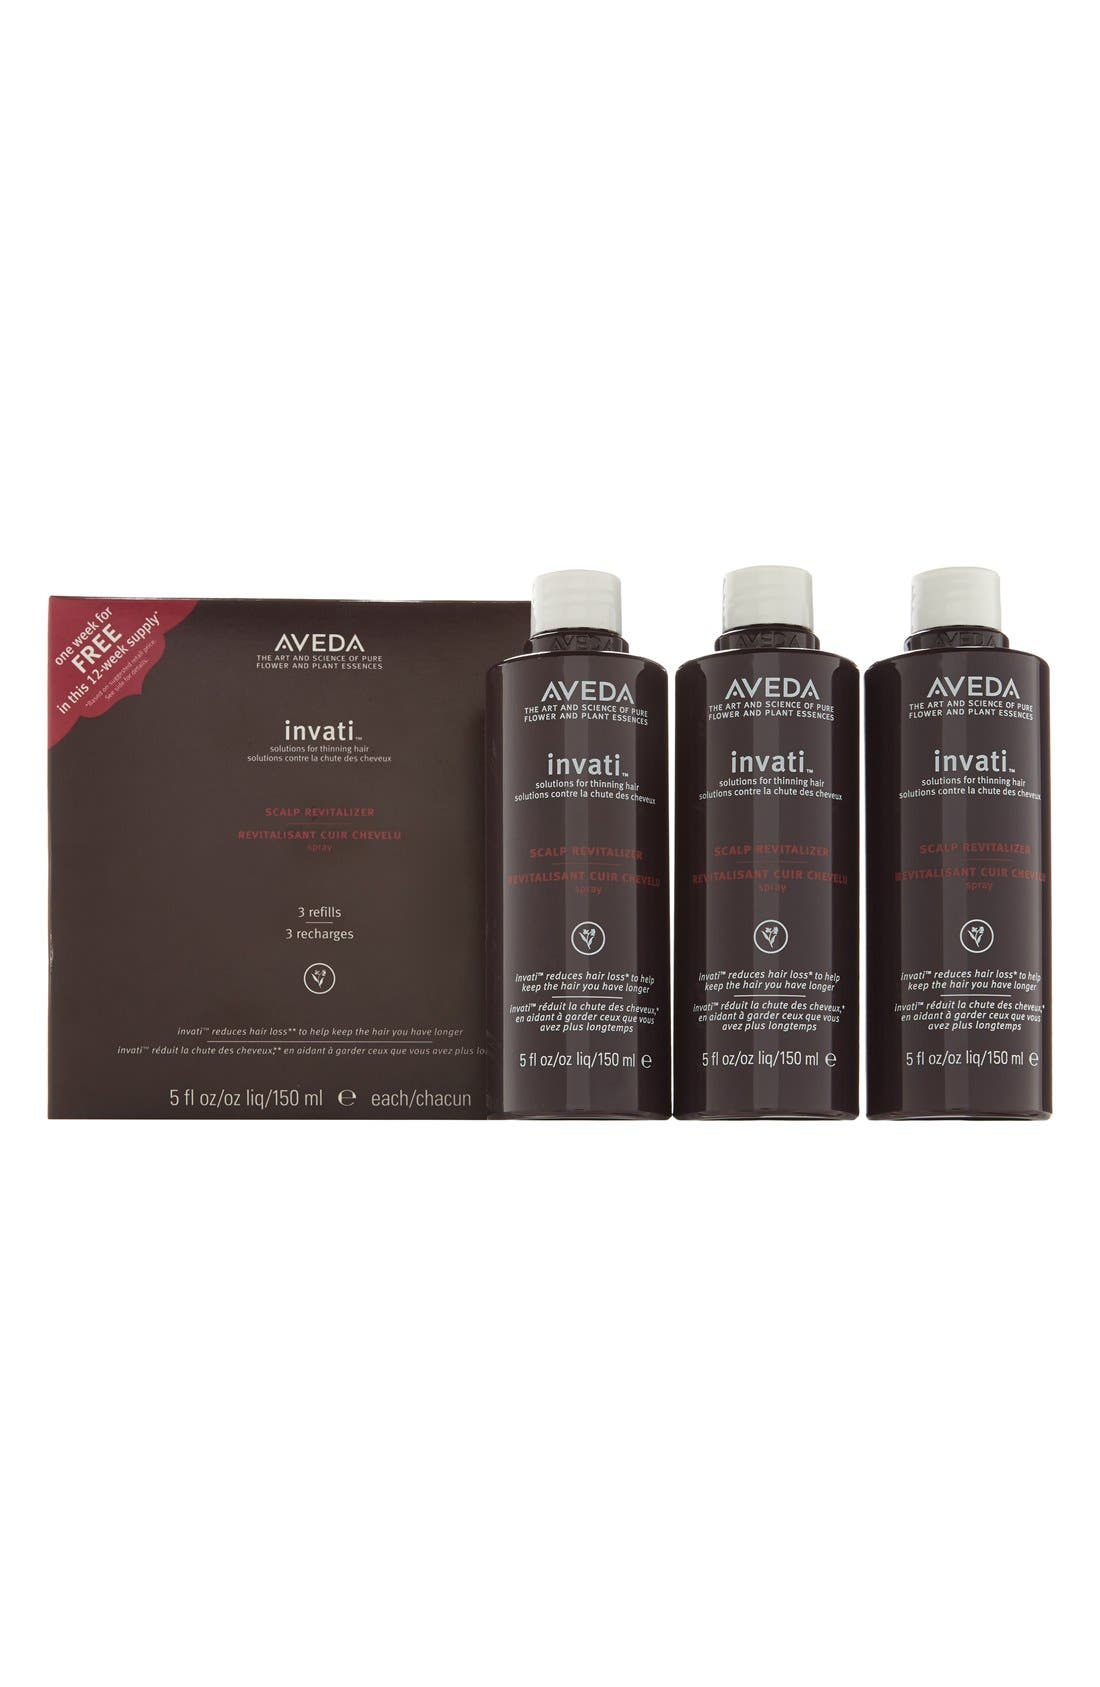 Aveda invati™ Scalp Revitalizer Refill Trio